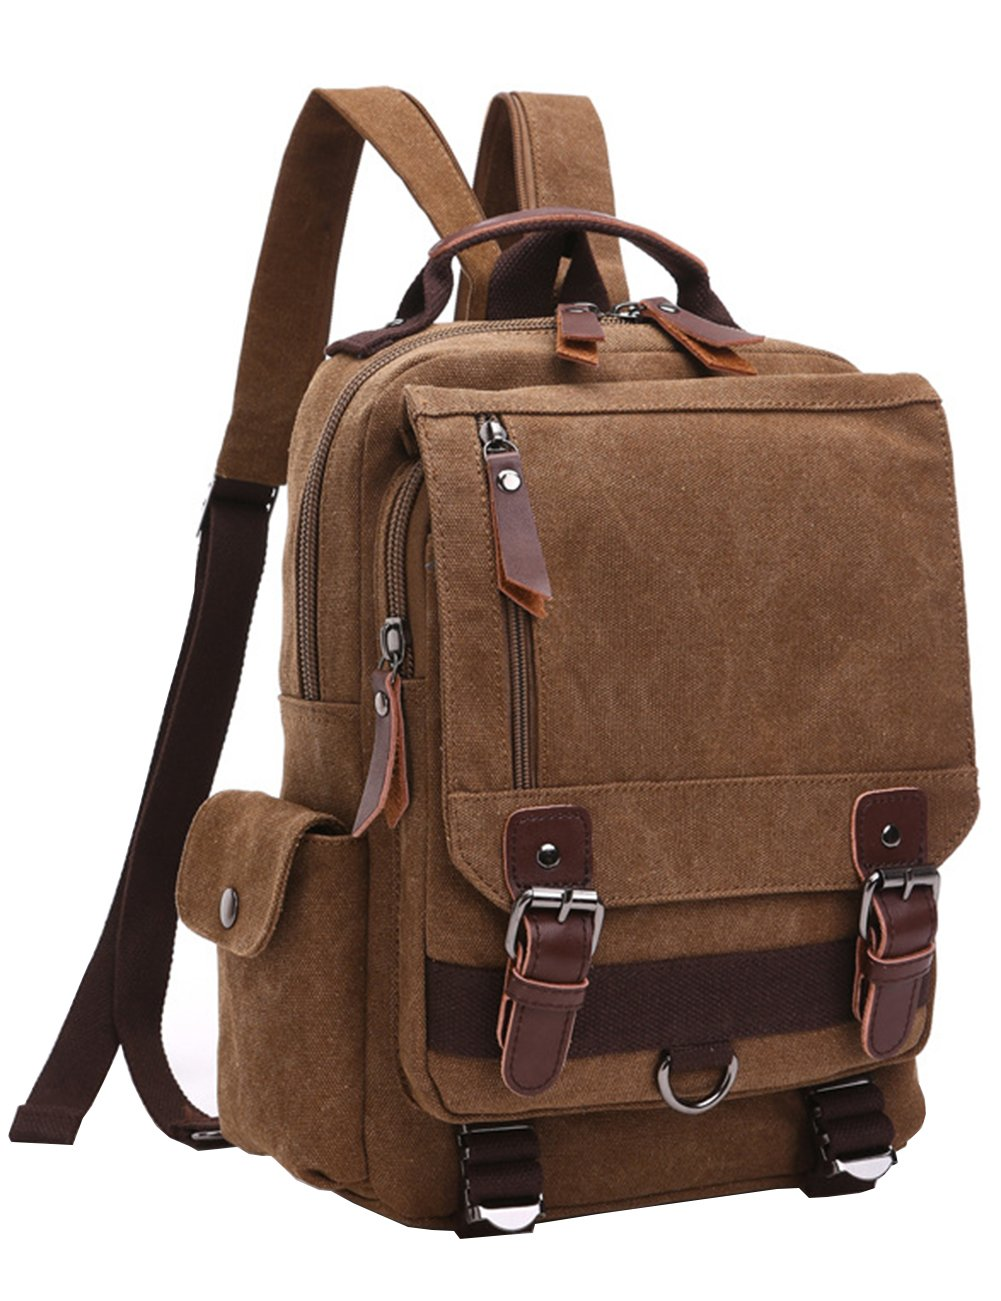 Mygreen Vintage Canvas Cross Body Messenger Backpack Rucksack for Men & Boys Casual Book Bag Sports Daypack